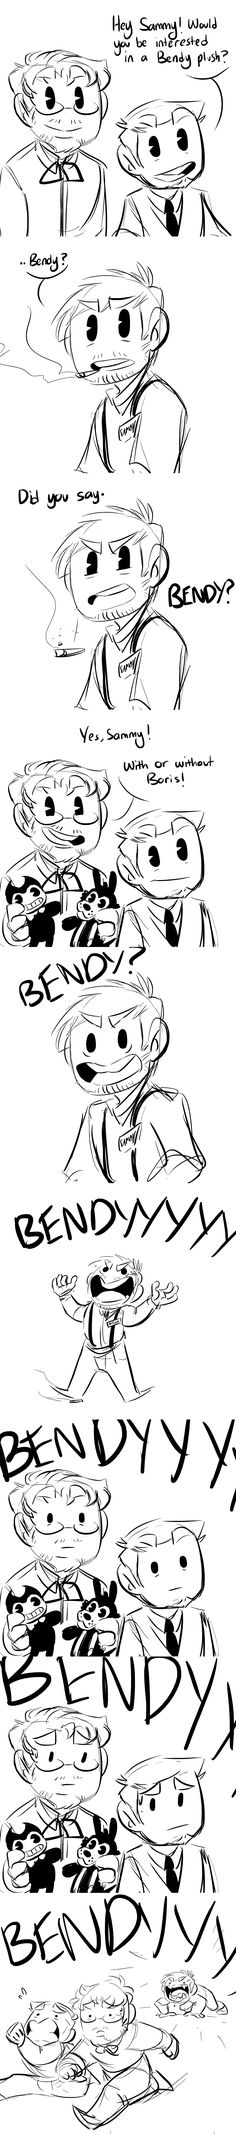 Bendy and The Ink Machine Comic - Sales Pitch (Feat. Reece Bridger) by Asktheinkdemon